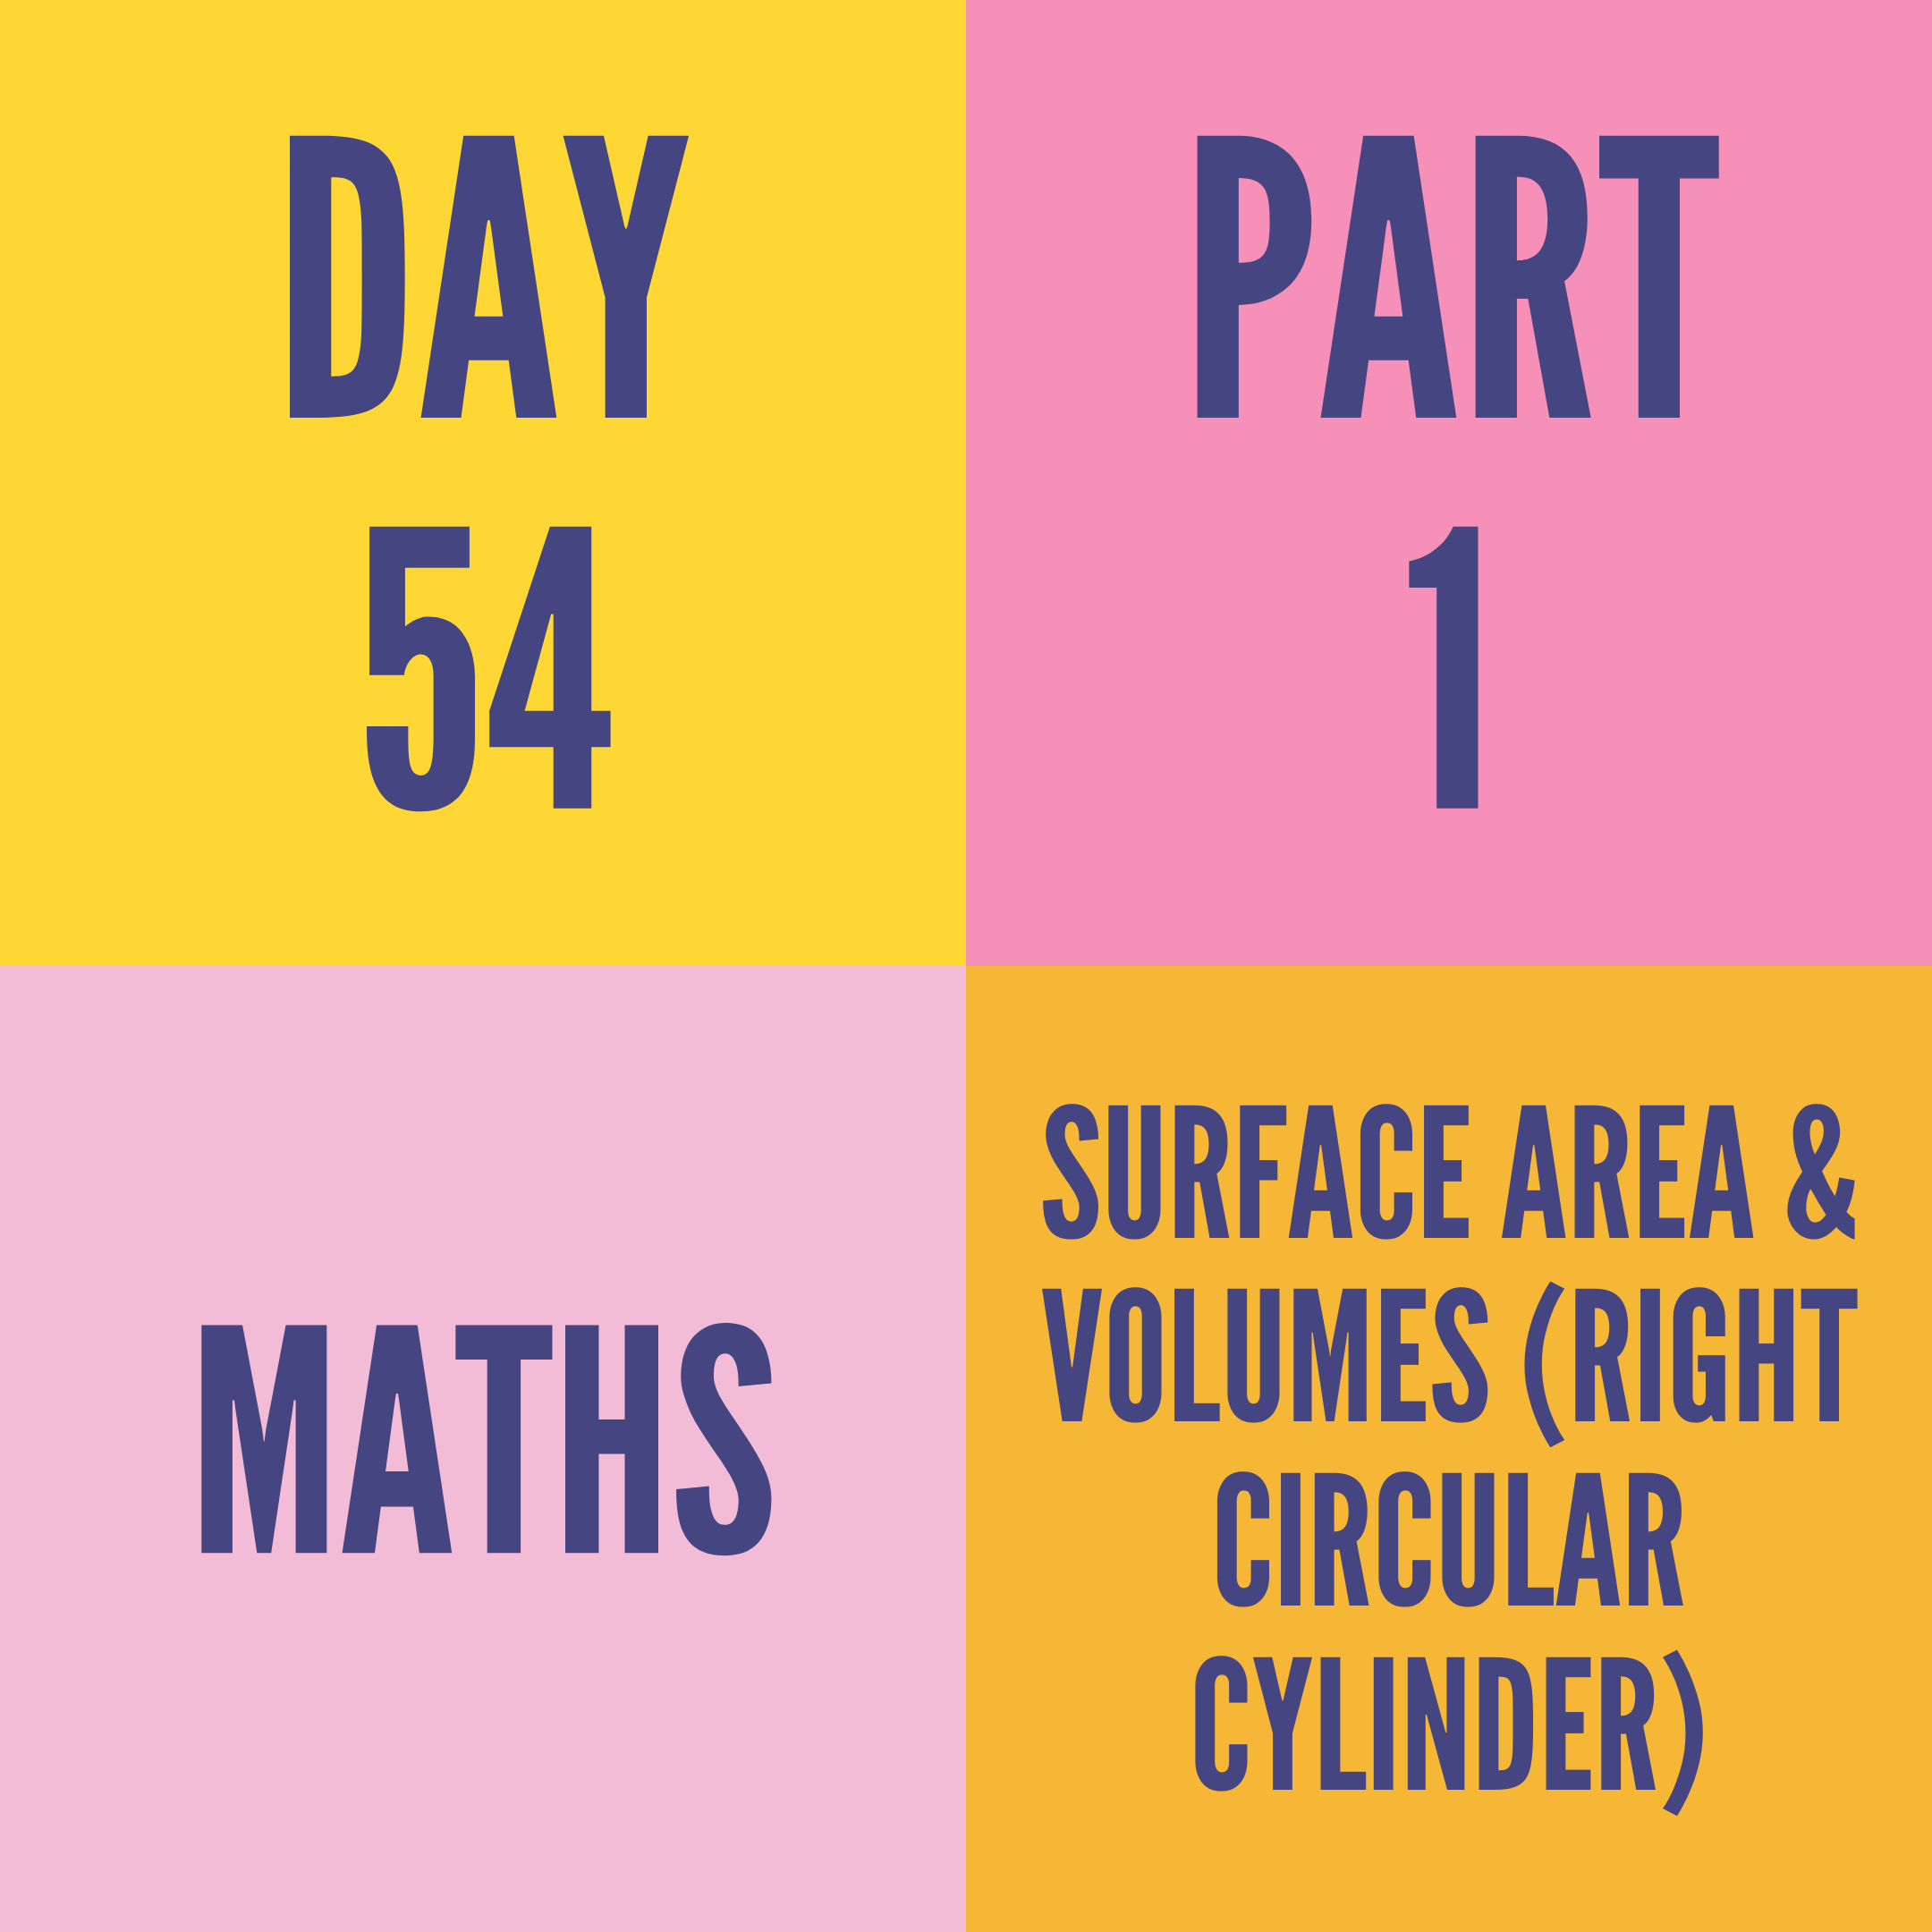 DAY-54 PART-1 SURFACE AREA & VOLUMES (RIGHT CIRCULAR CYLINDER)